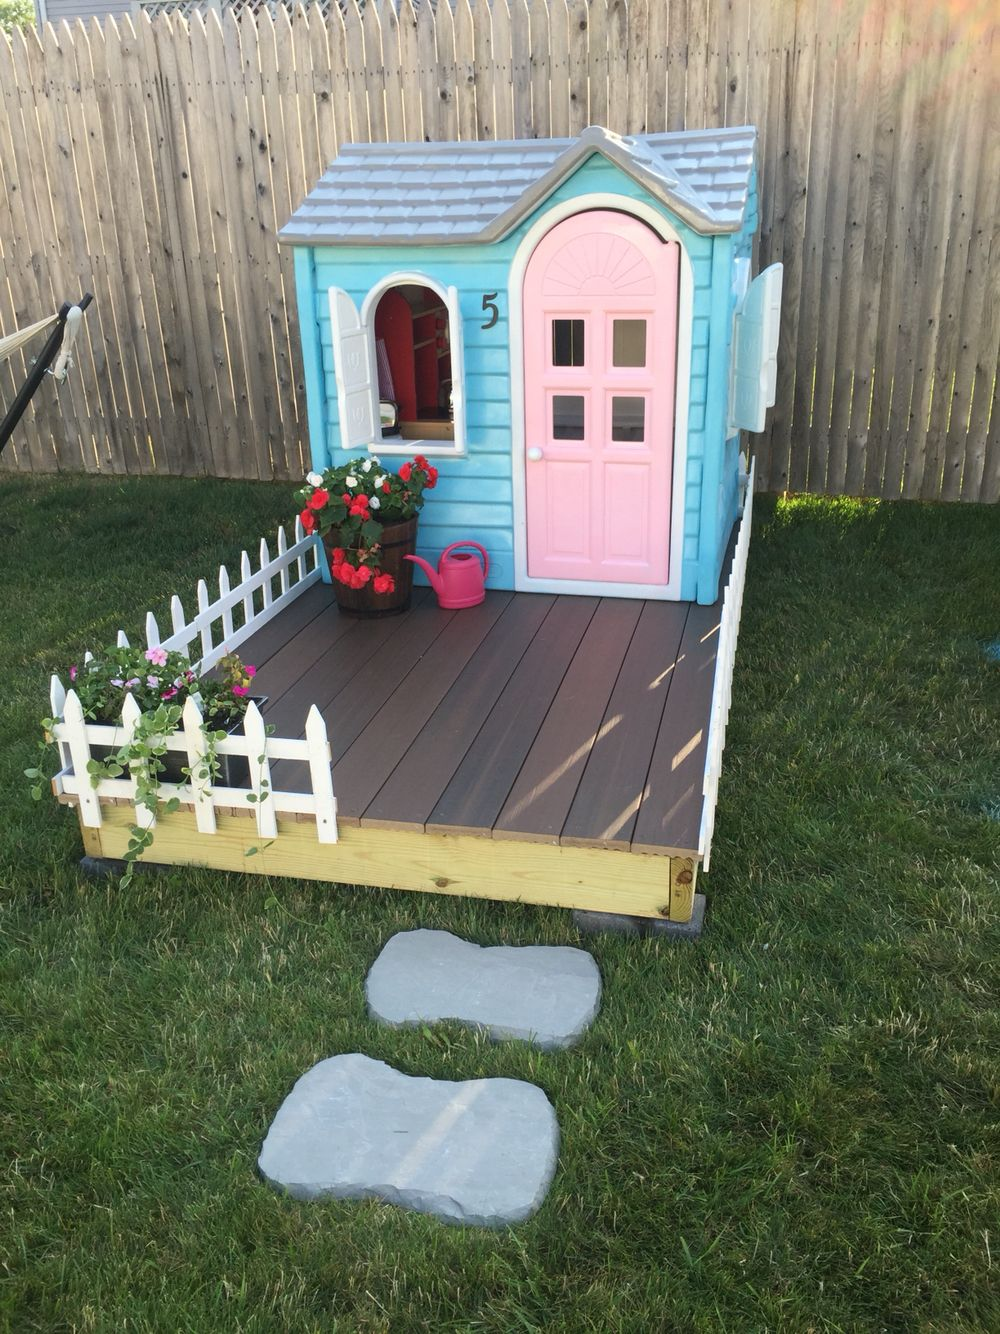 Little Tikes Playhouse Makeover All You Need Is A Few Cans Of Spray Paint And Lot Patience Did This Fun Project Over Weekend Well Worth It